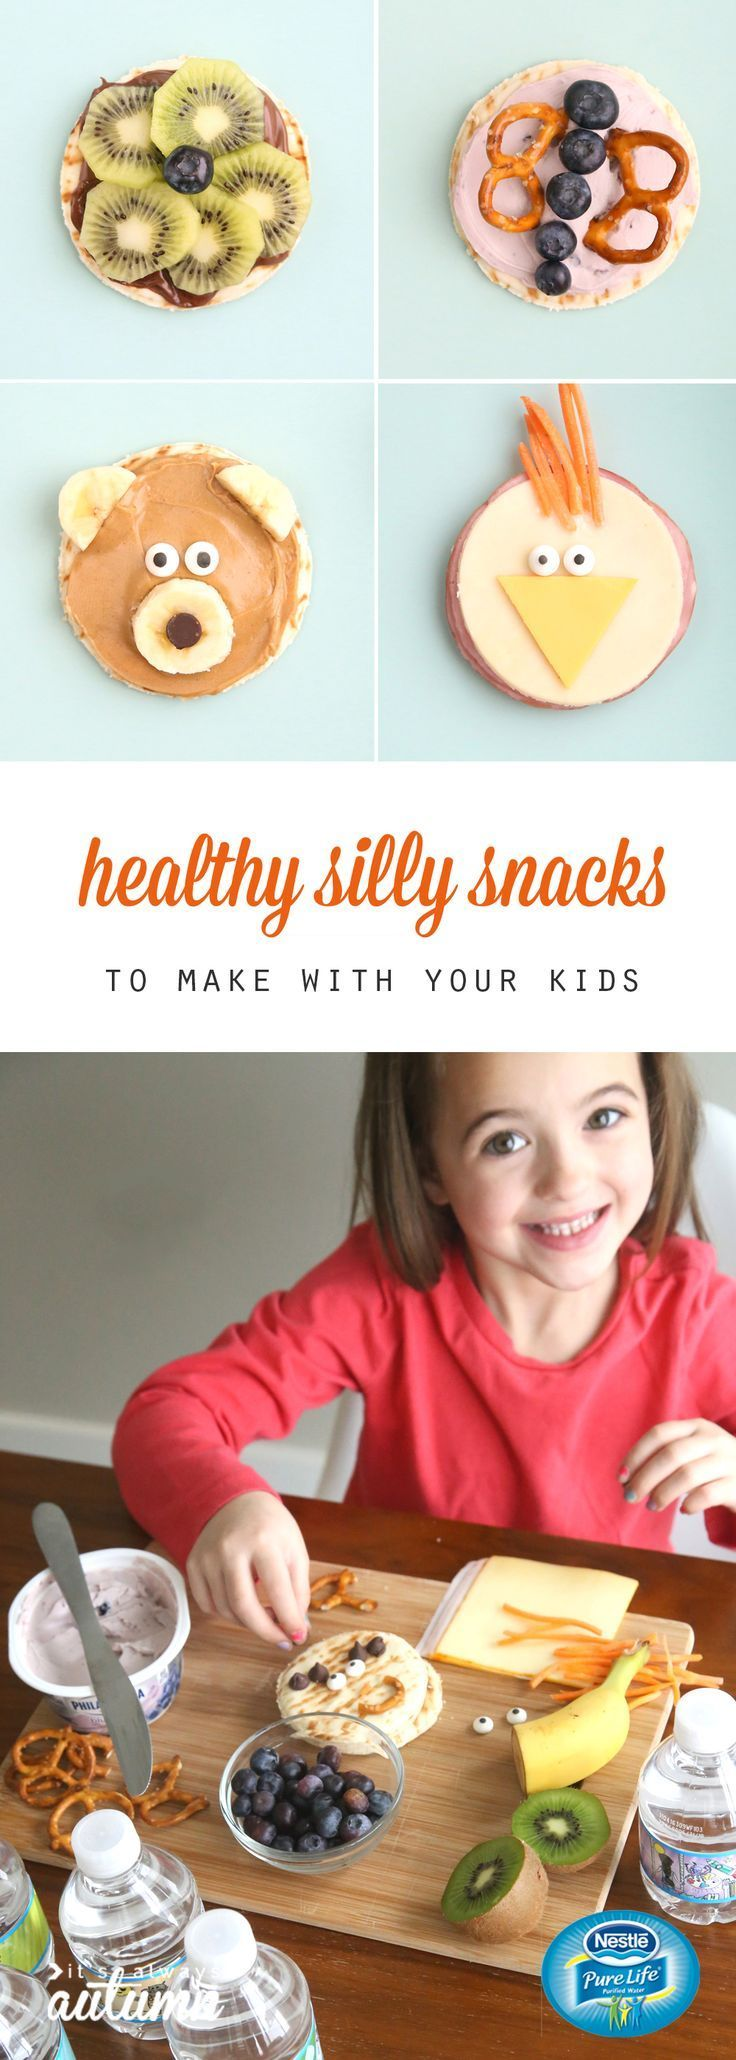 """Snack time just got a little more fun! With hungry kids always craving an after school snack, make sure you have healthy options that are also fun, including healthy hydration options such as the new NESTLÉ®️️️️ PURE LIFE®️️️️ 8oz """"Share-a-Smile™️"""" Kid Designed Ed"""